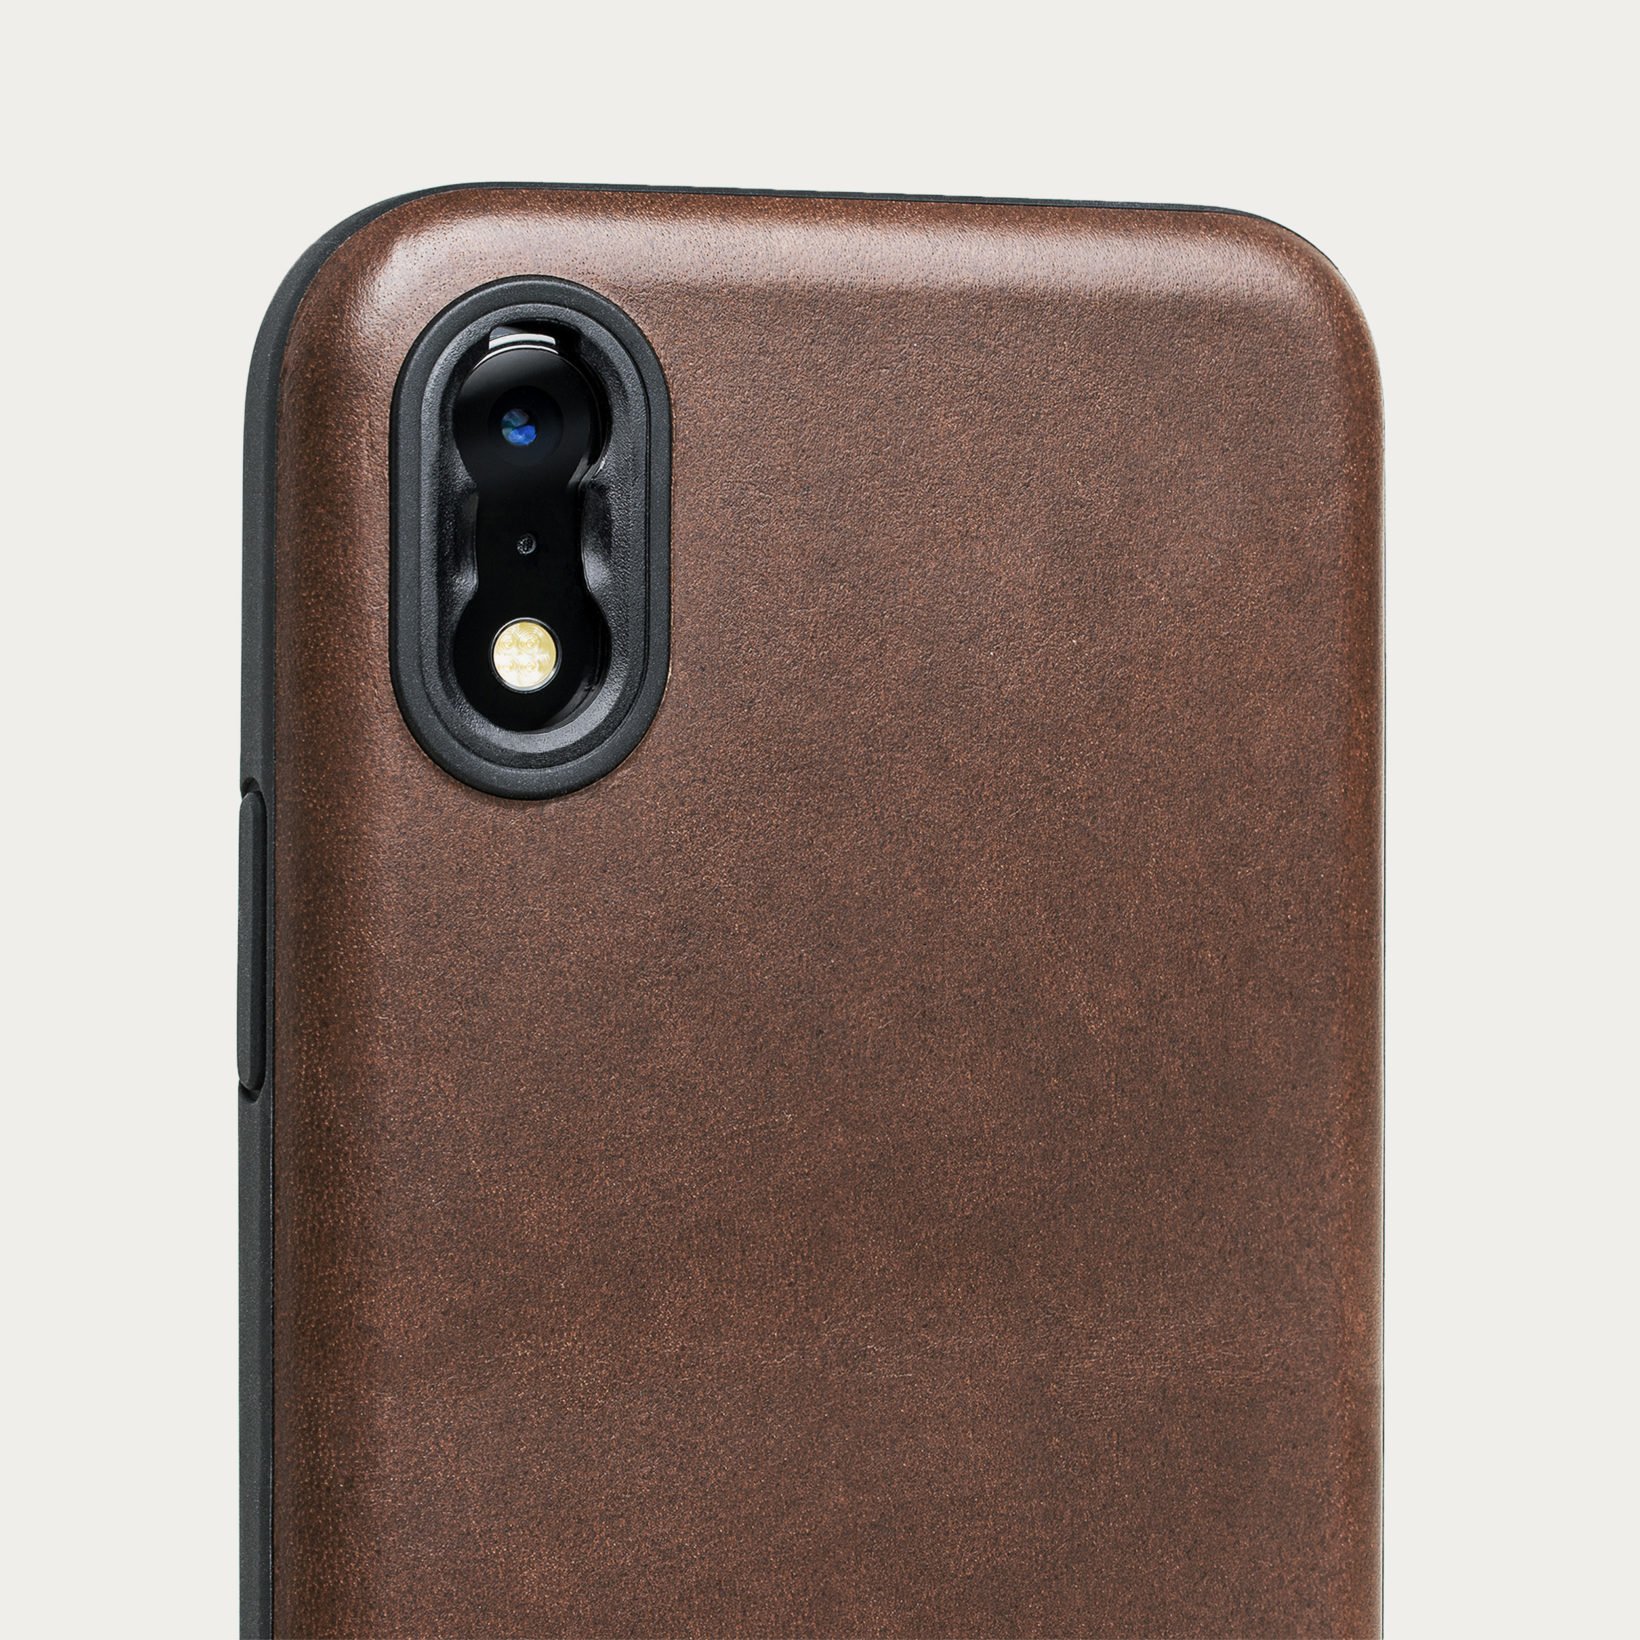 online retailer 409db d3ca9 Nomad x Moment Rugged iPhone Case | iPhone XR - Nomad / Moment Rugged Case  Rustic Brown Leather